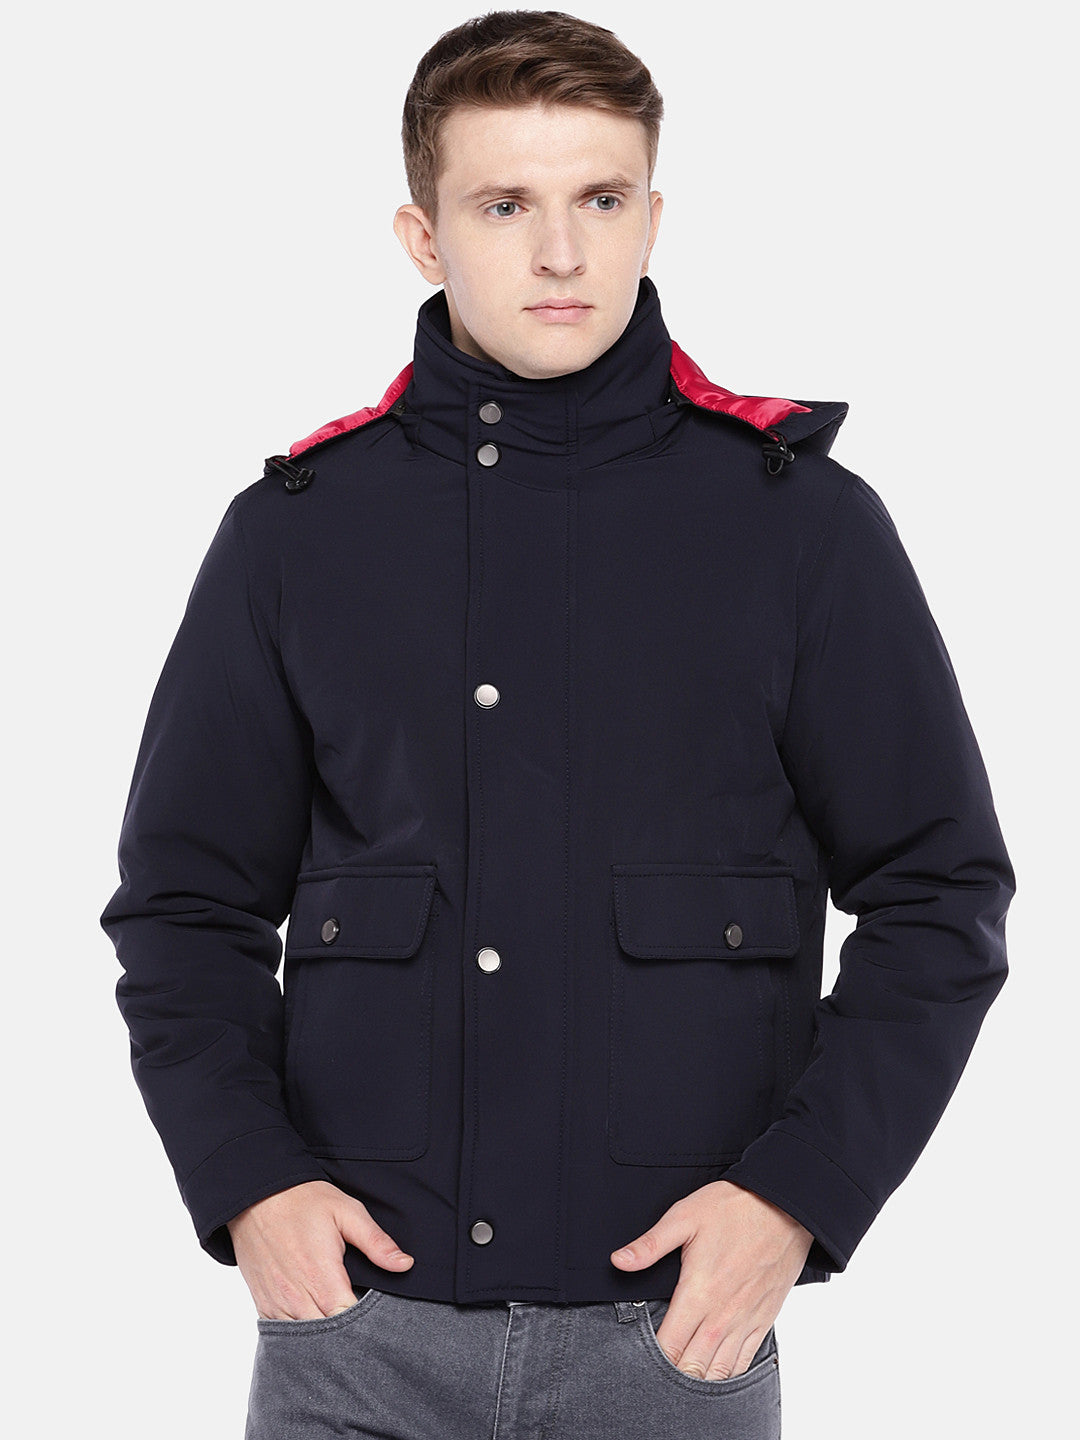 Navy Blue Solid Sporty Jacket-1